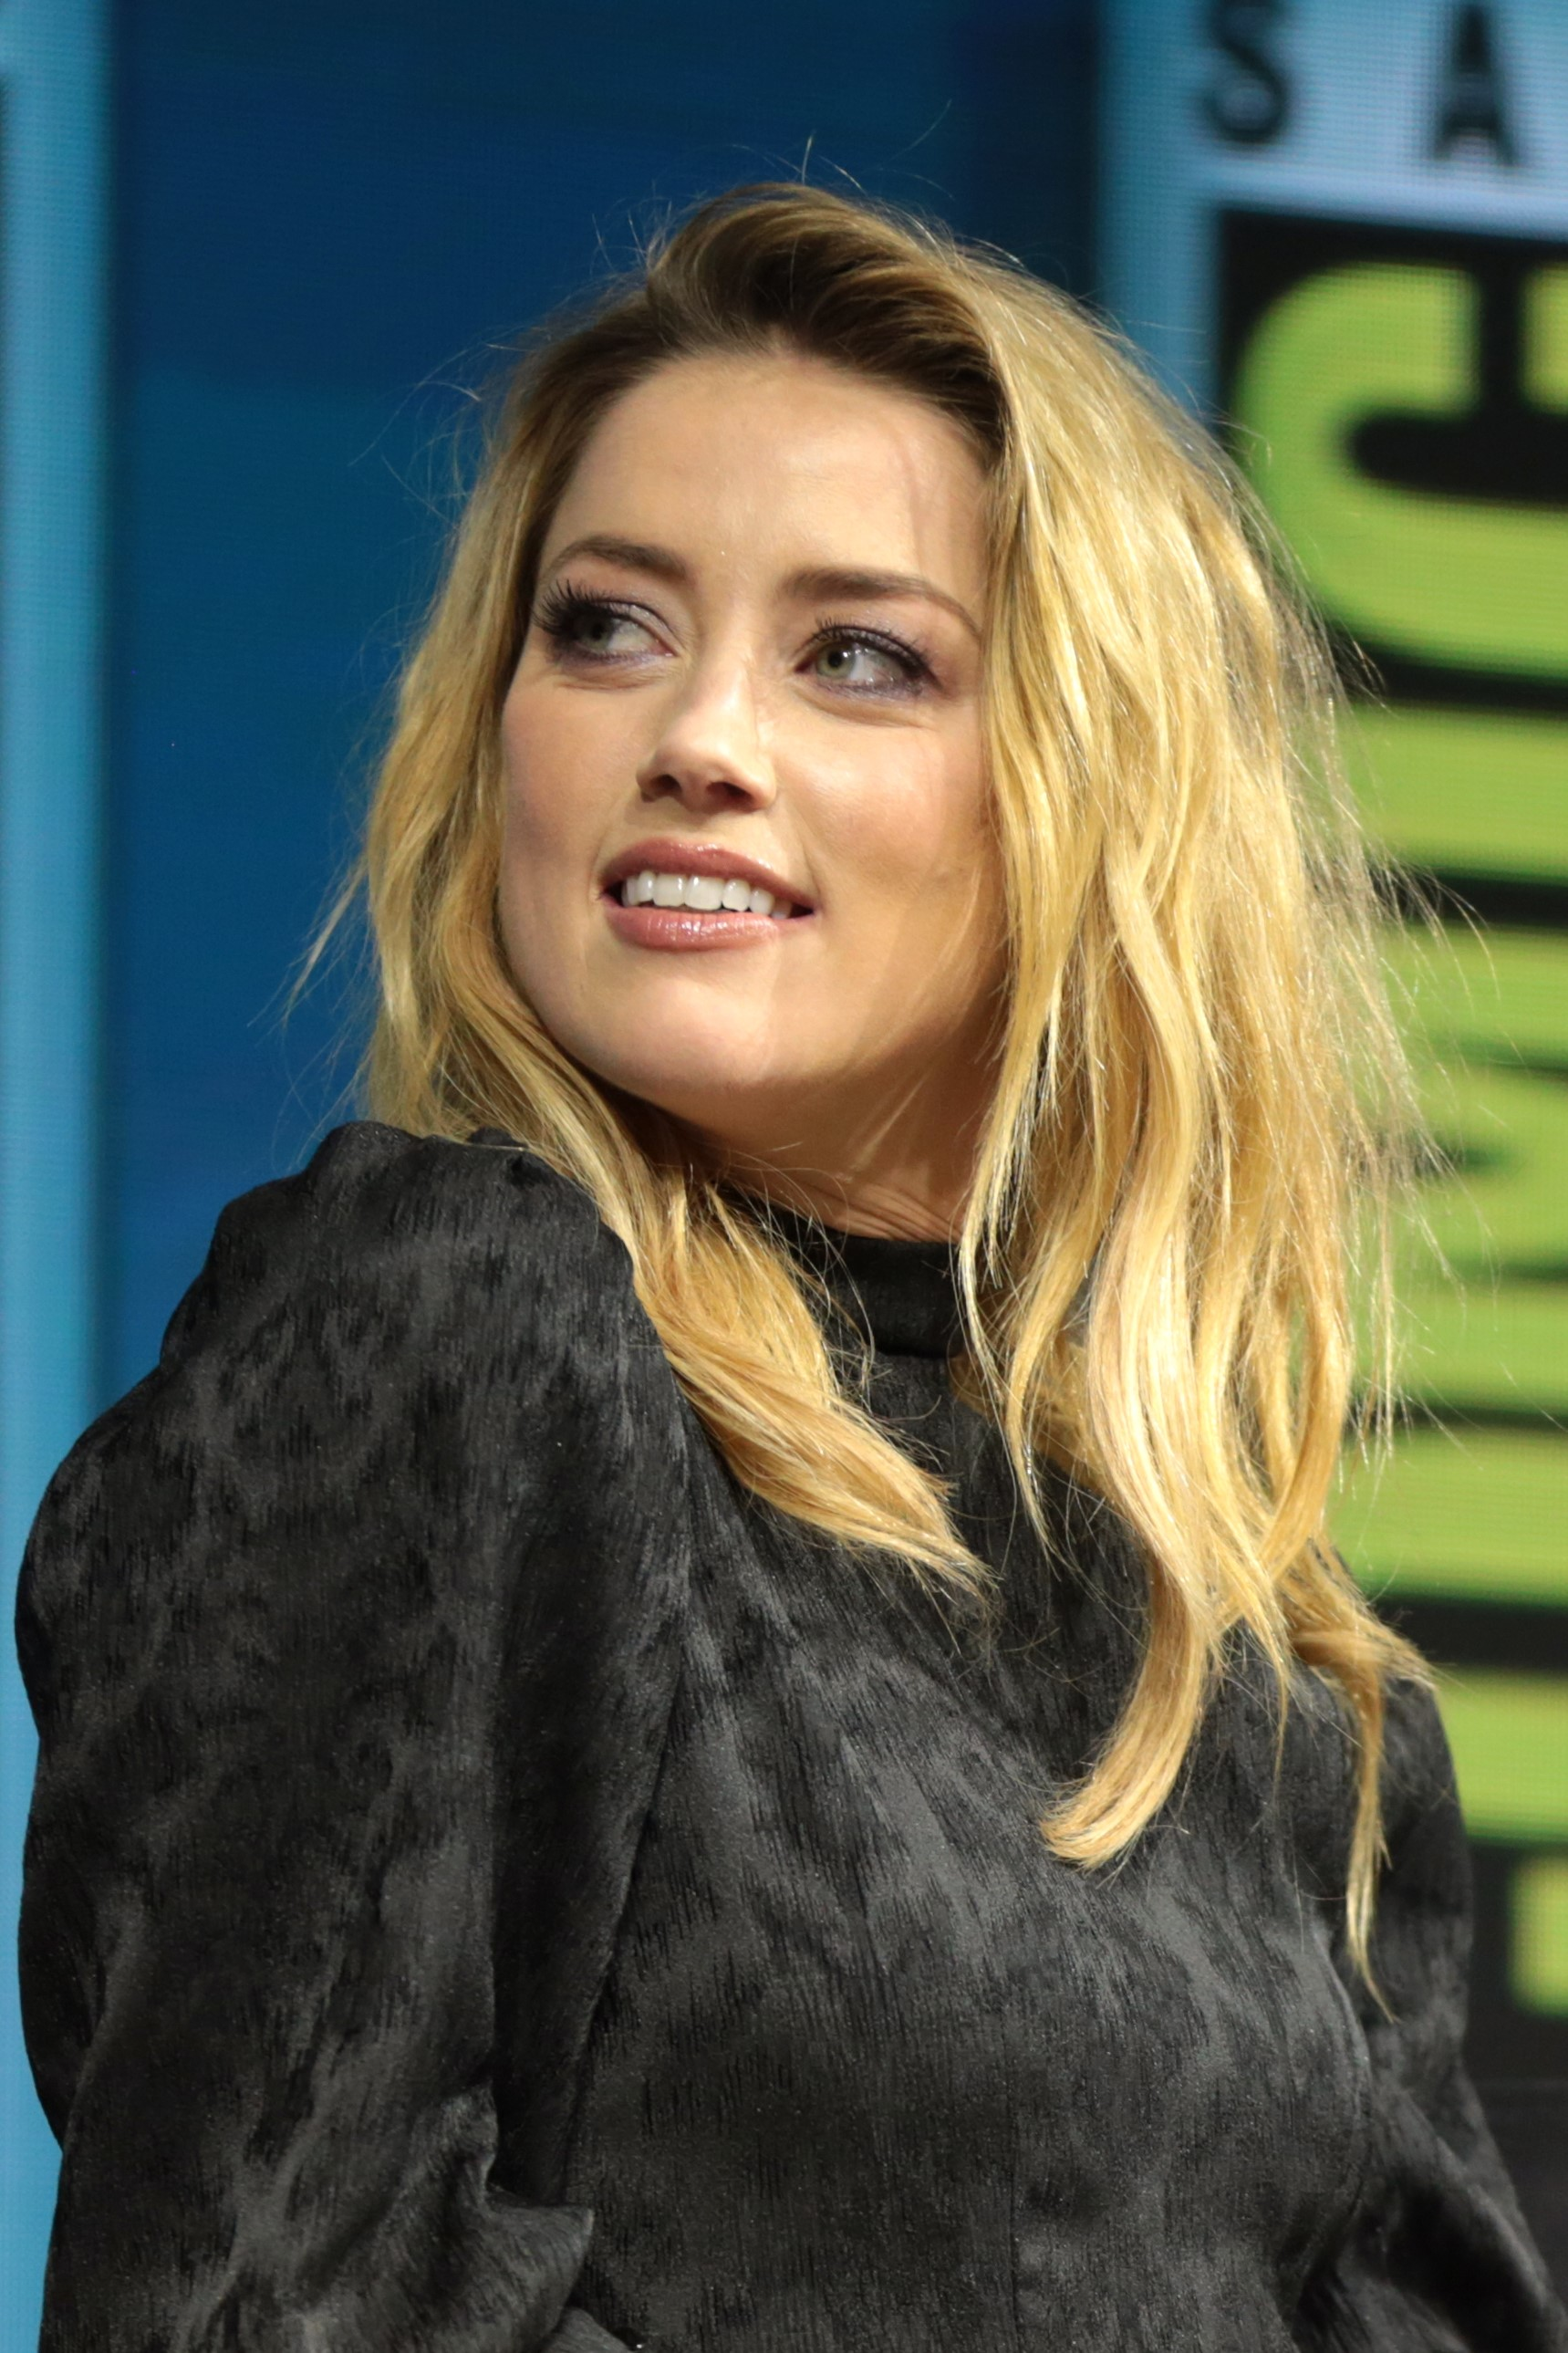 Amber Heard 2019: Fiancé, net worth, tattoos, smoking ... Amber Heard